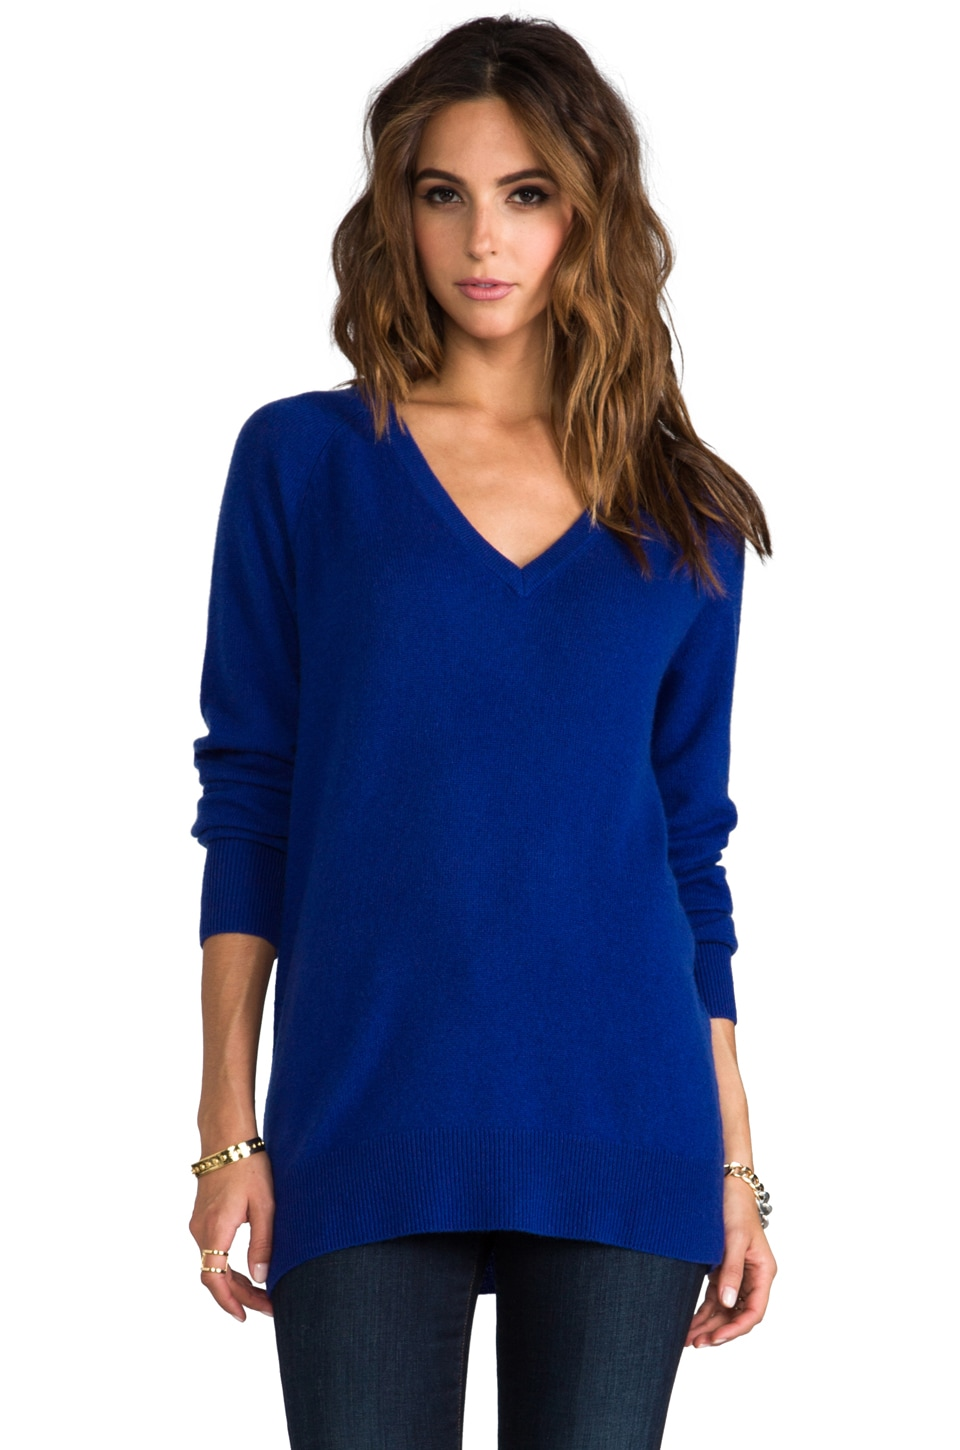 Equipment Asher V-Neck Sweater in Royal Blue